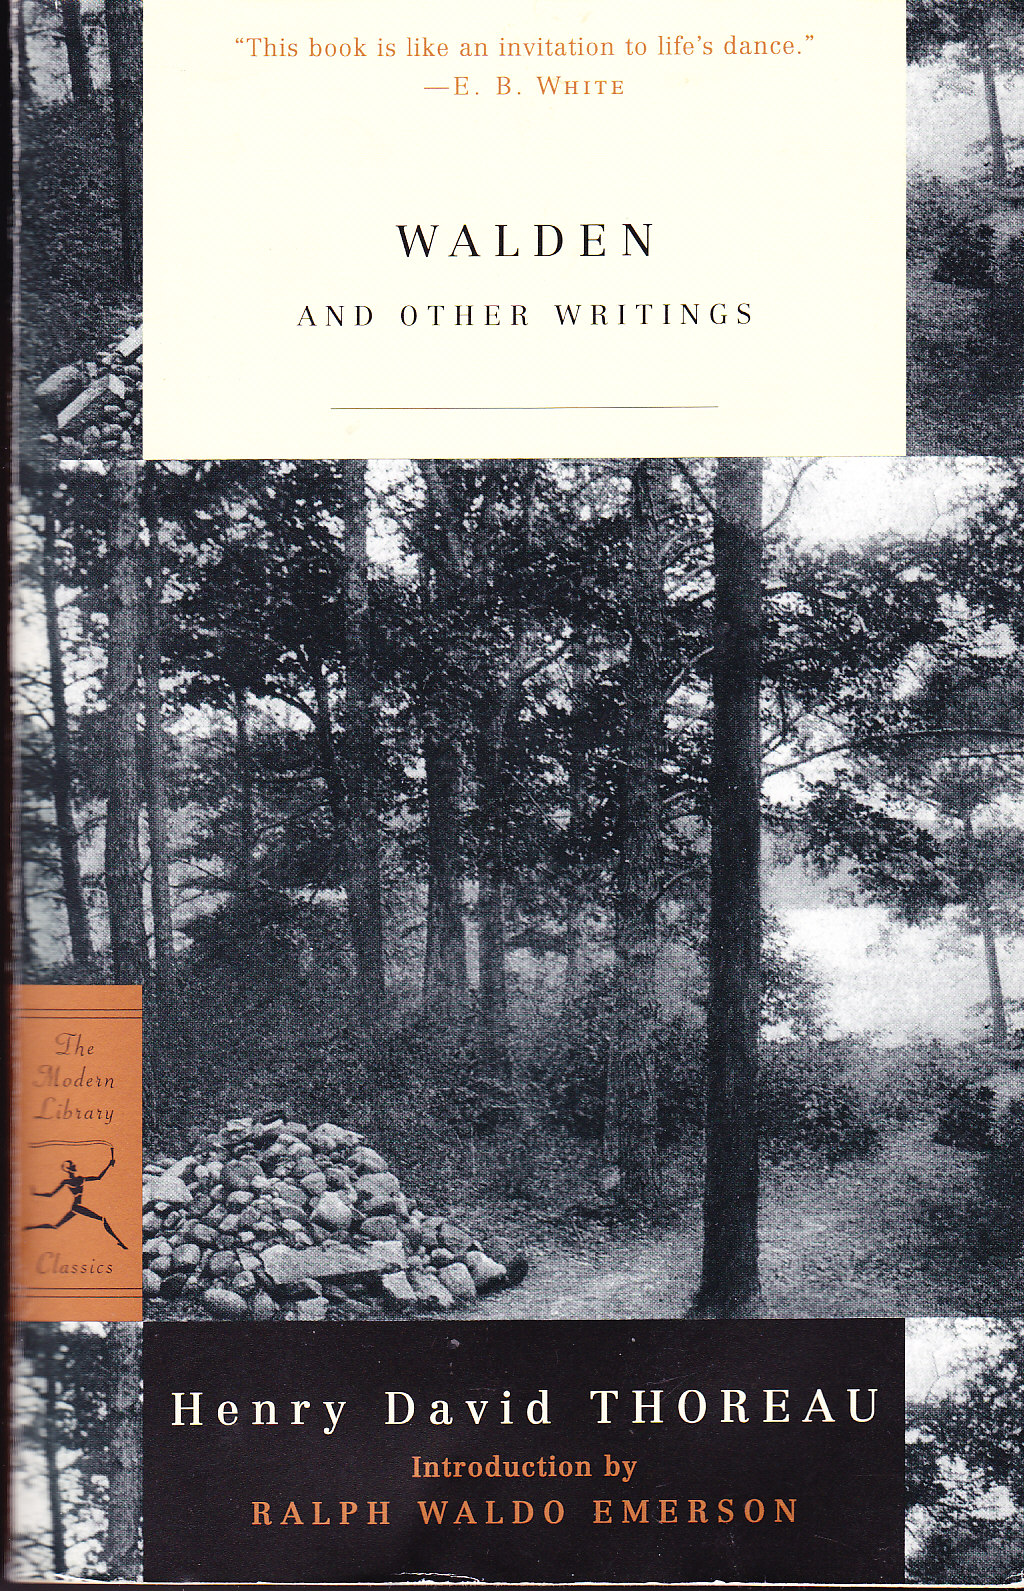 an analysis of the sounds in thoreaus walden Excerpts from walden by henry thoreau most of the luxuries, and many of the so-called comforts of life, are not only not indispensable, but positive hindrances to the elevation of mankind.